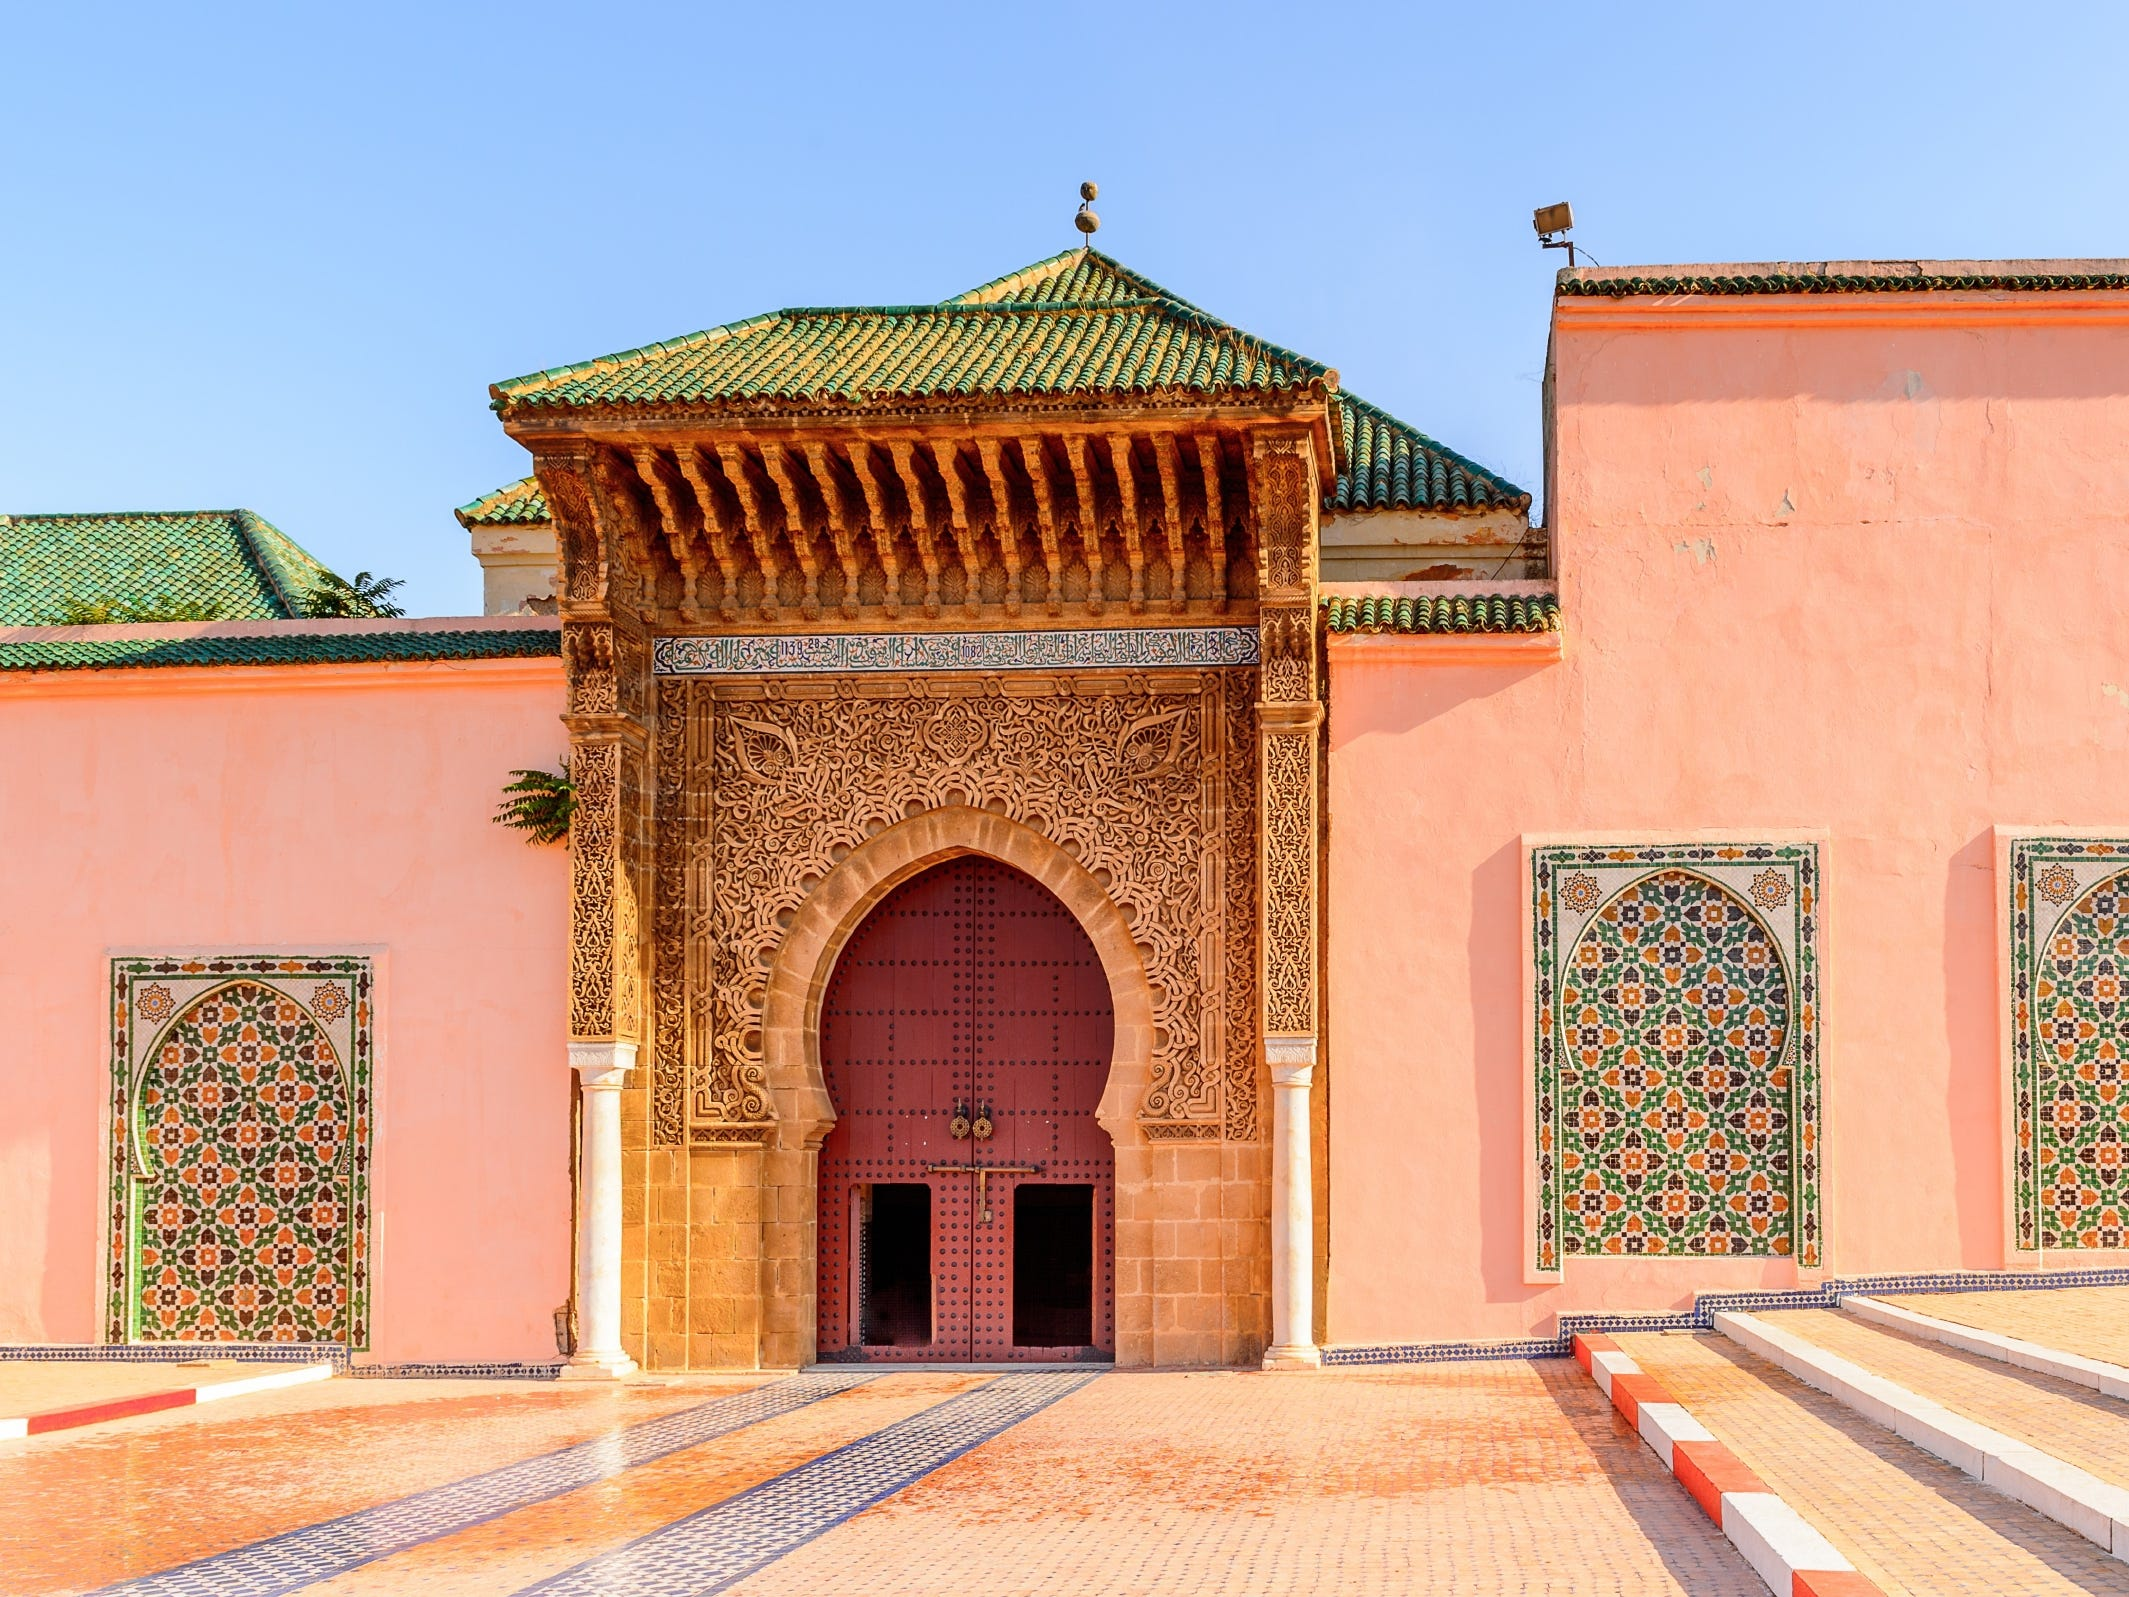 No. 10 on the list of top 10 cities to visit in 2019 is Meknes, Morocco. The warrior-king tomb of Moulay Ismail has emerged from a two-year restoration. Due to open at the end of 2018, it makes Morocco's least-visited imperial city more appealing than ever.